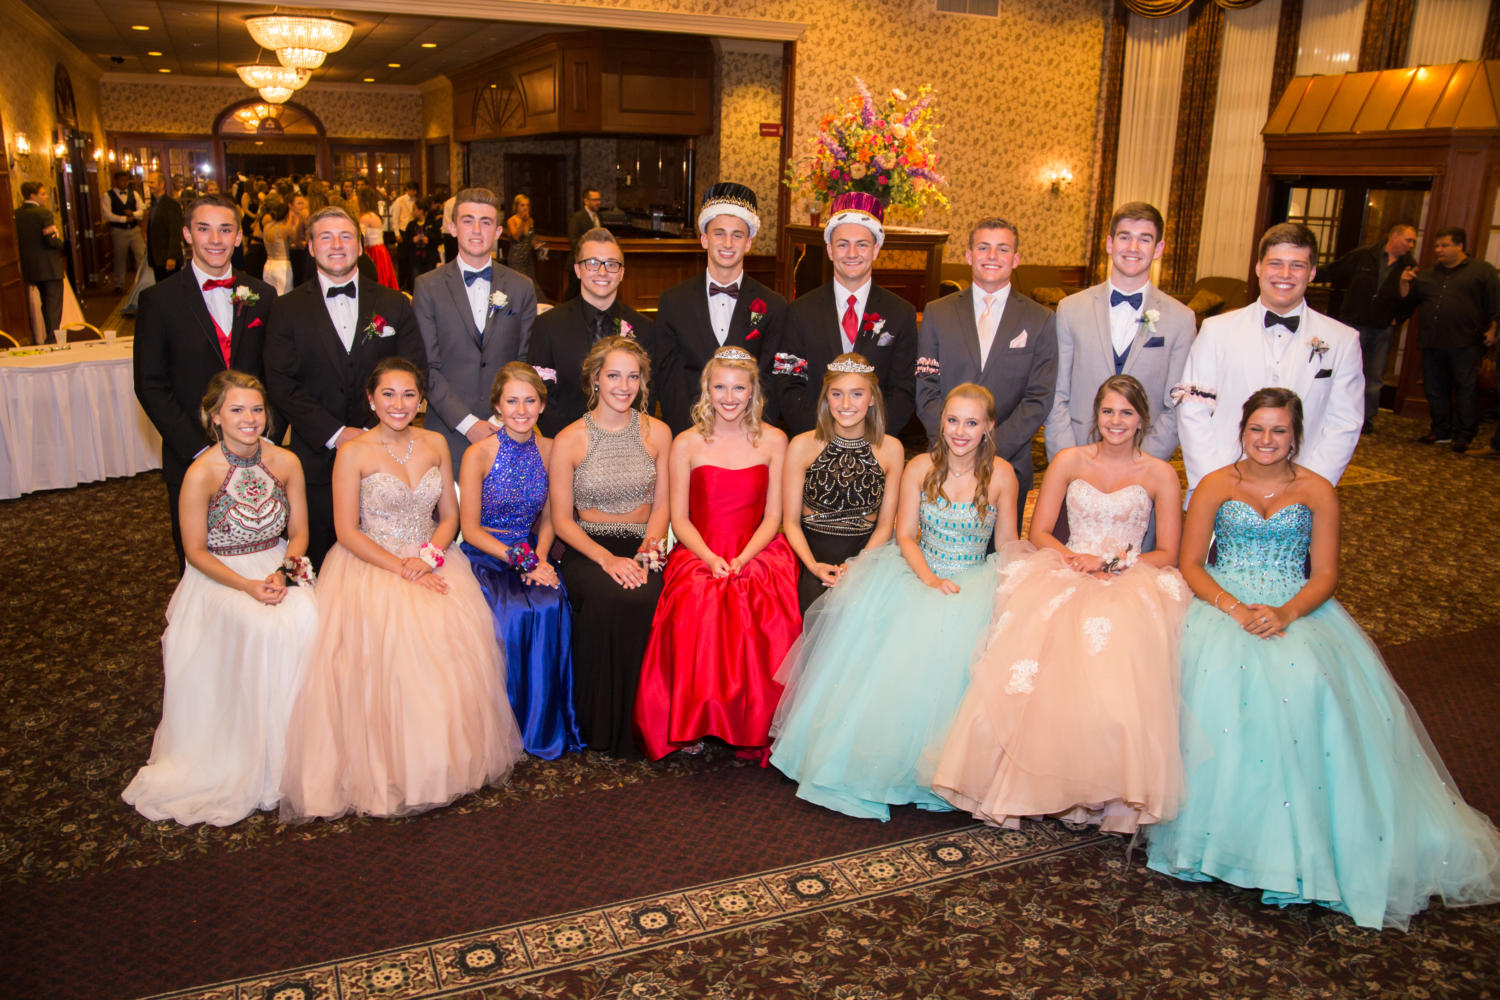 Prom+Court+Photo+Taken+At+Country+Springs+Hotel